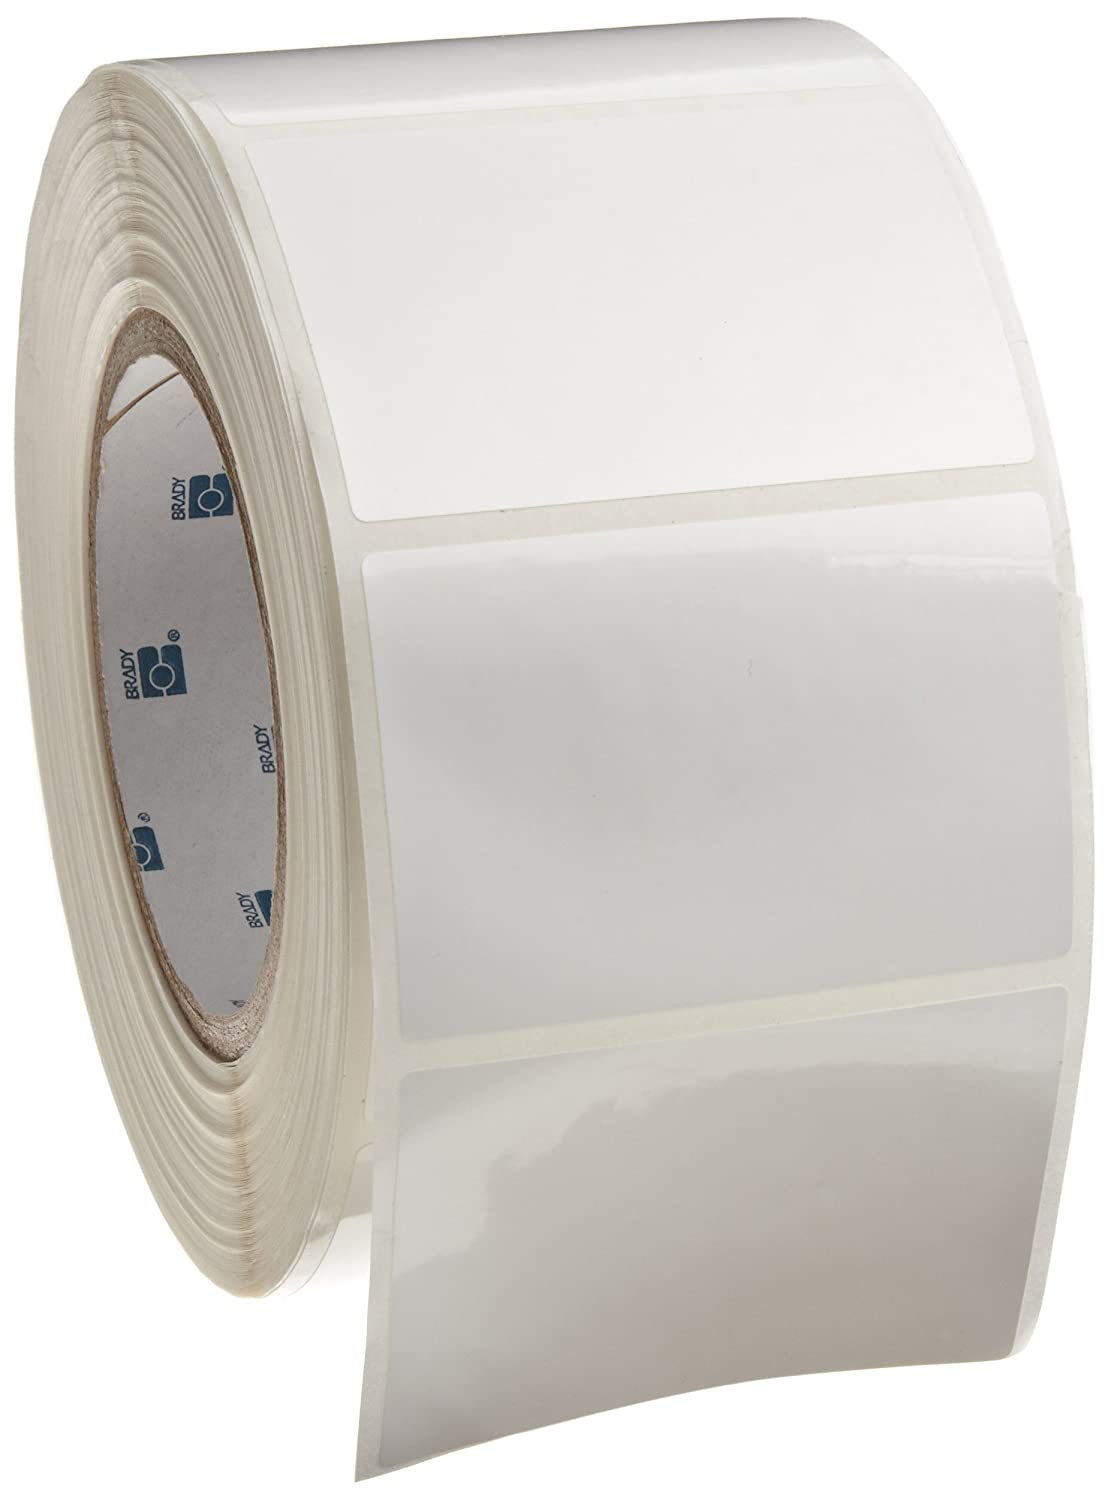 B-483 Ultra Aggressive Polyester Brady THT-19-483-1 3 Width x 2 Height Gloss Finish White Thermal Transfer Printable Label 1000 per Roll